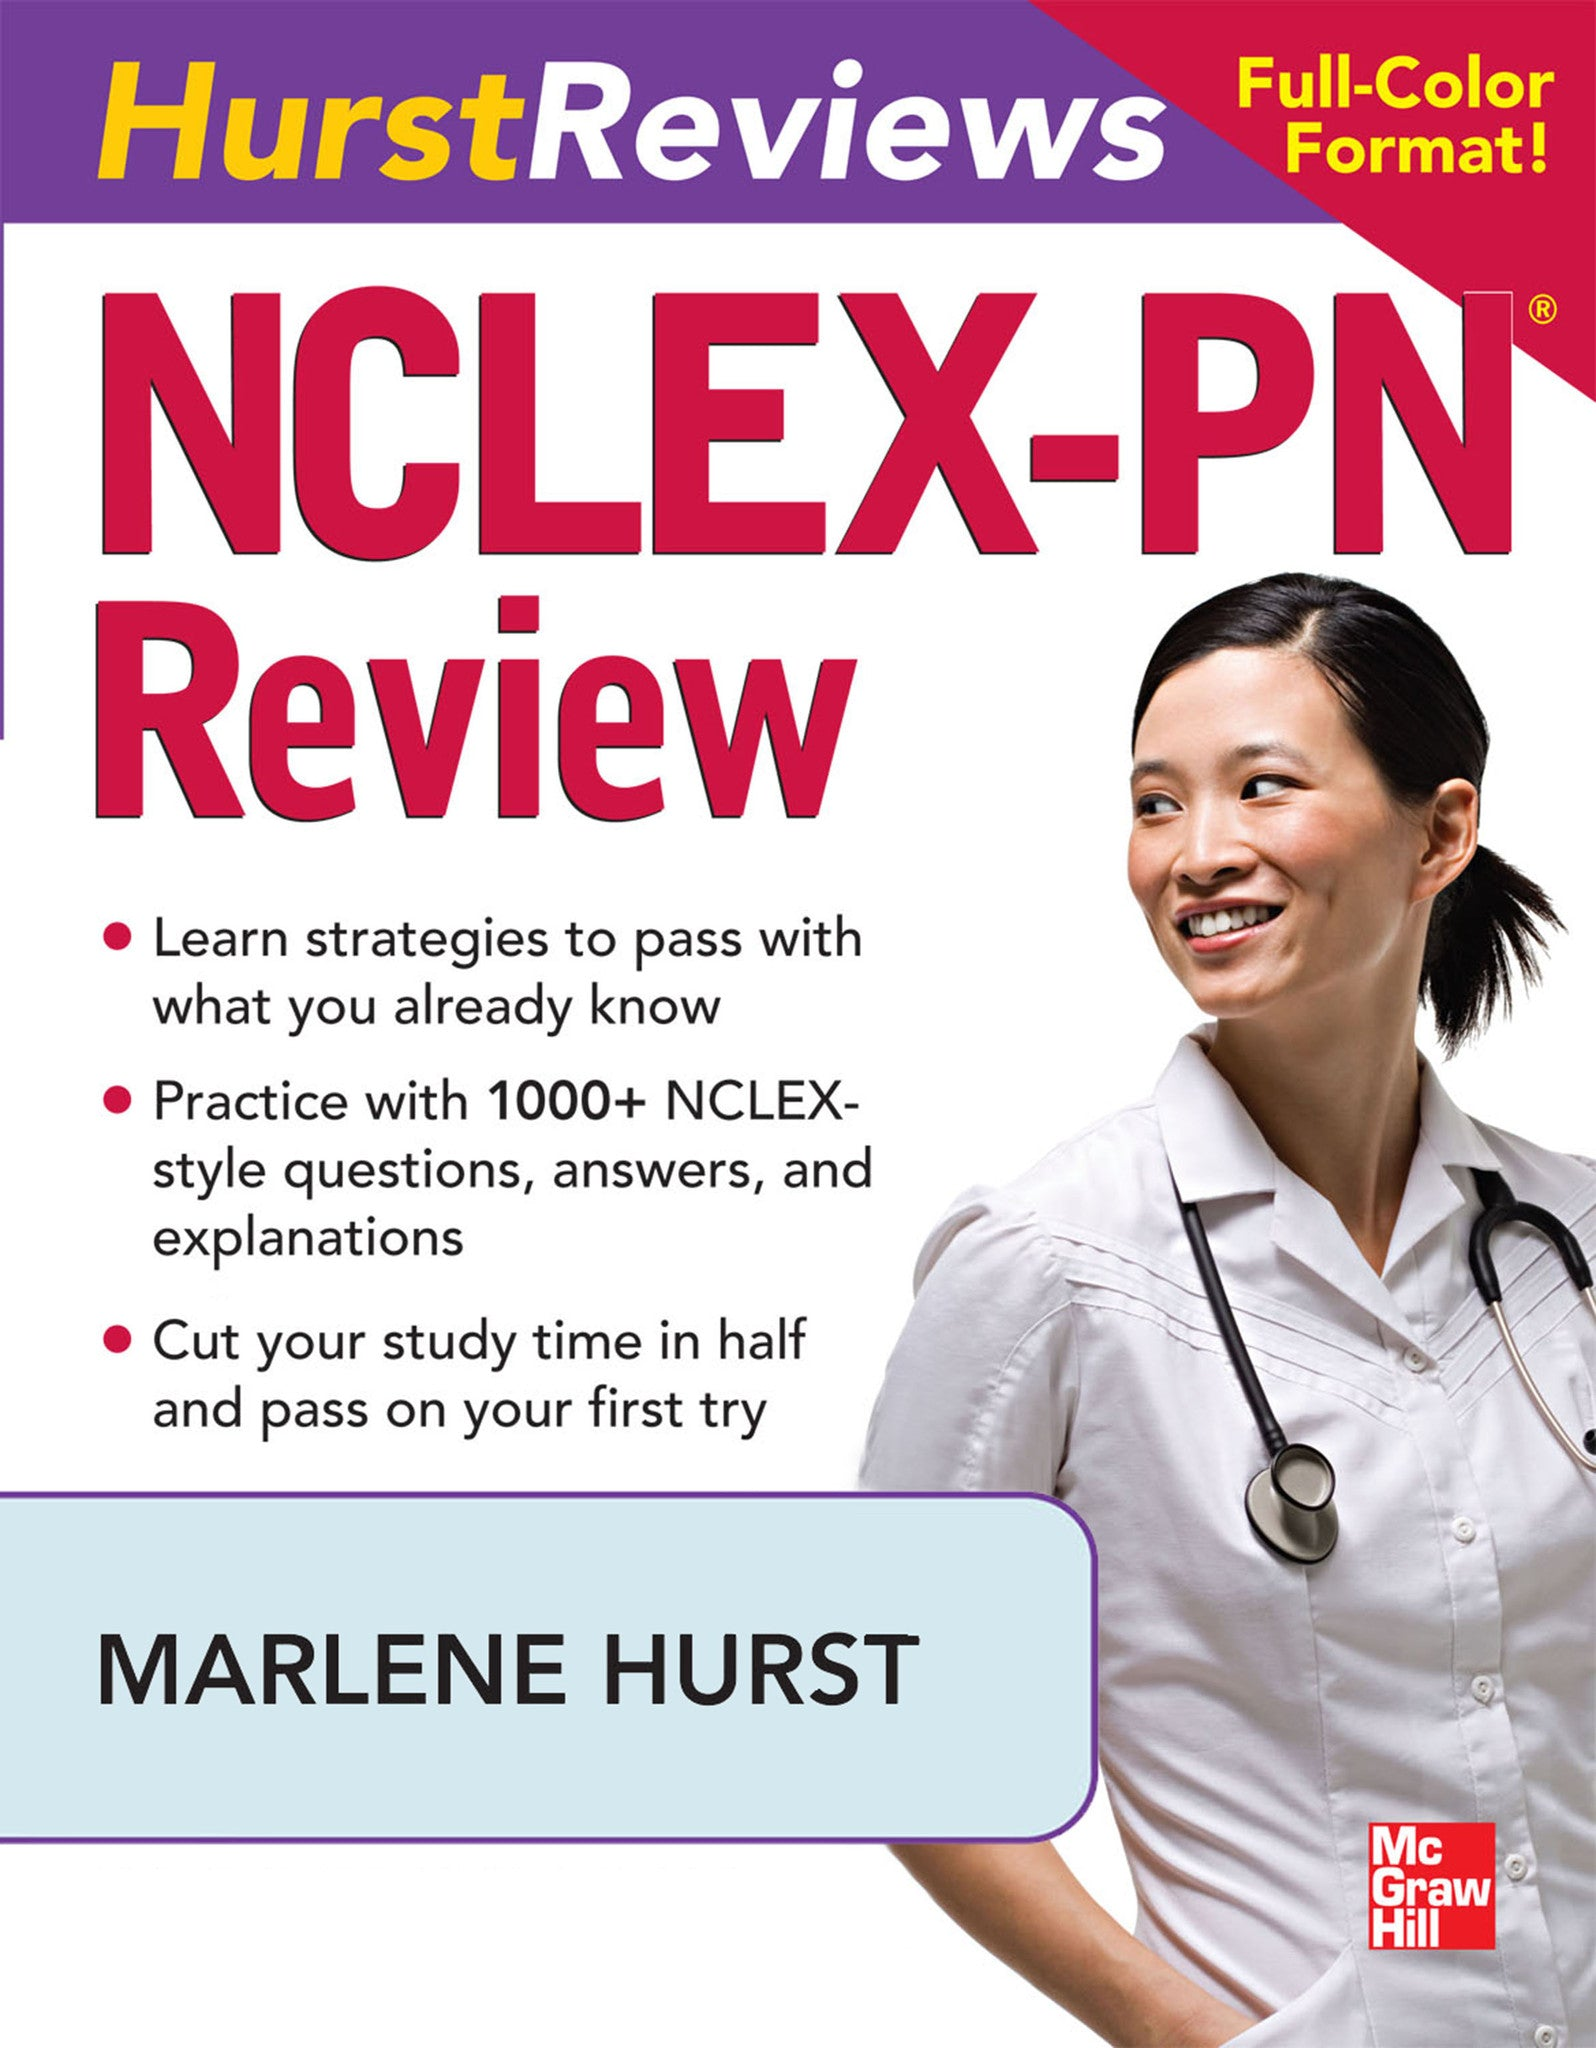 hurst critical thinking application nclex review Critical thinking and application nclex pn review provides a step by step  you may looking hurst reviews nclex pn review document throught internet in.